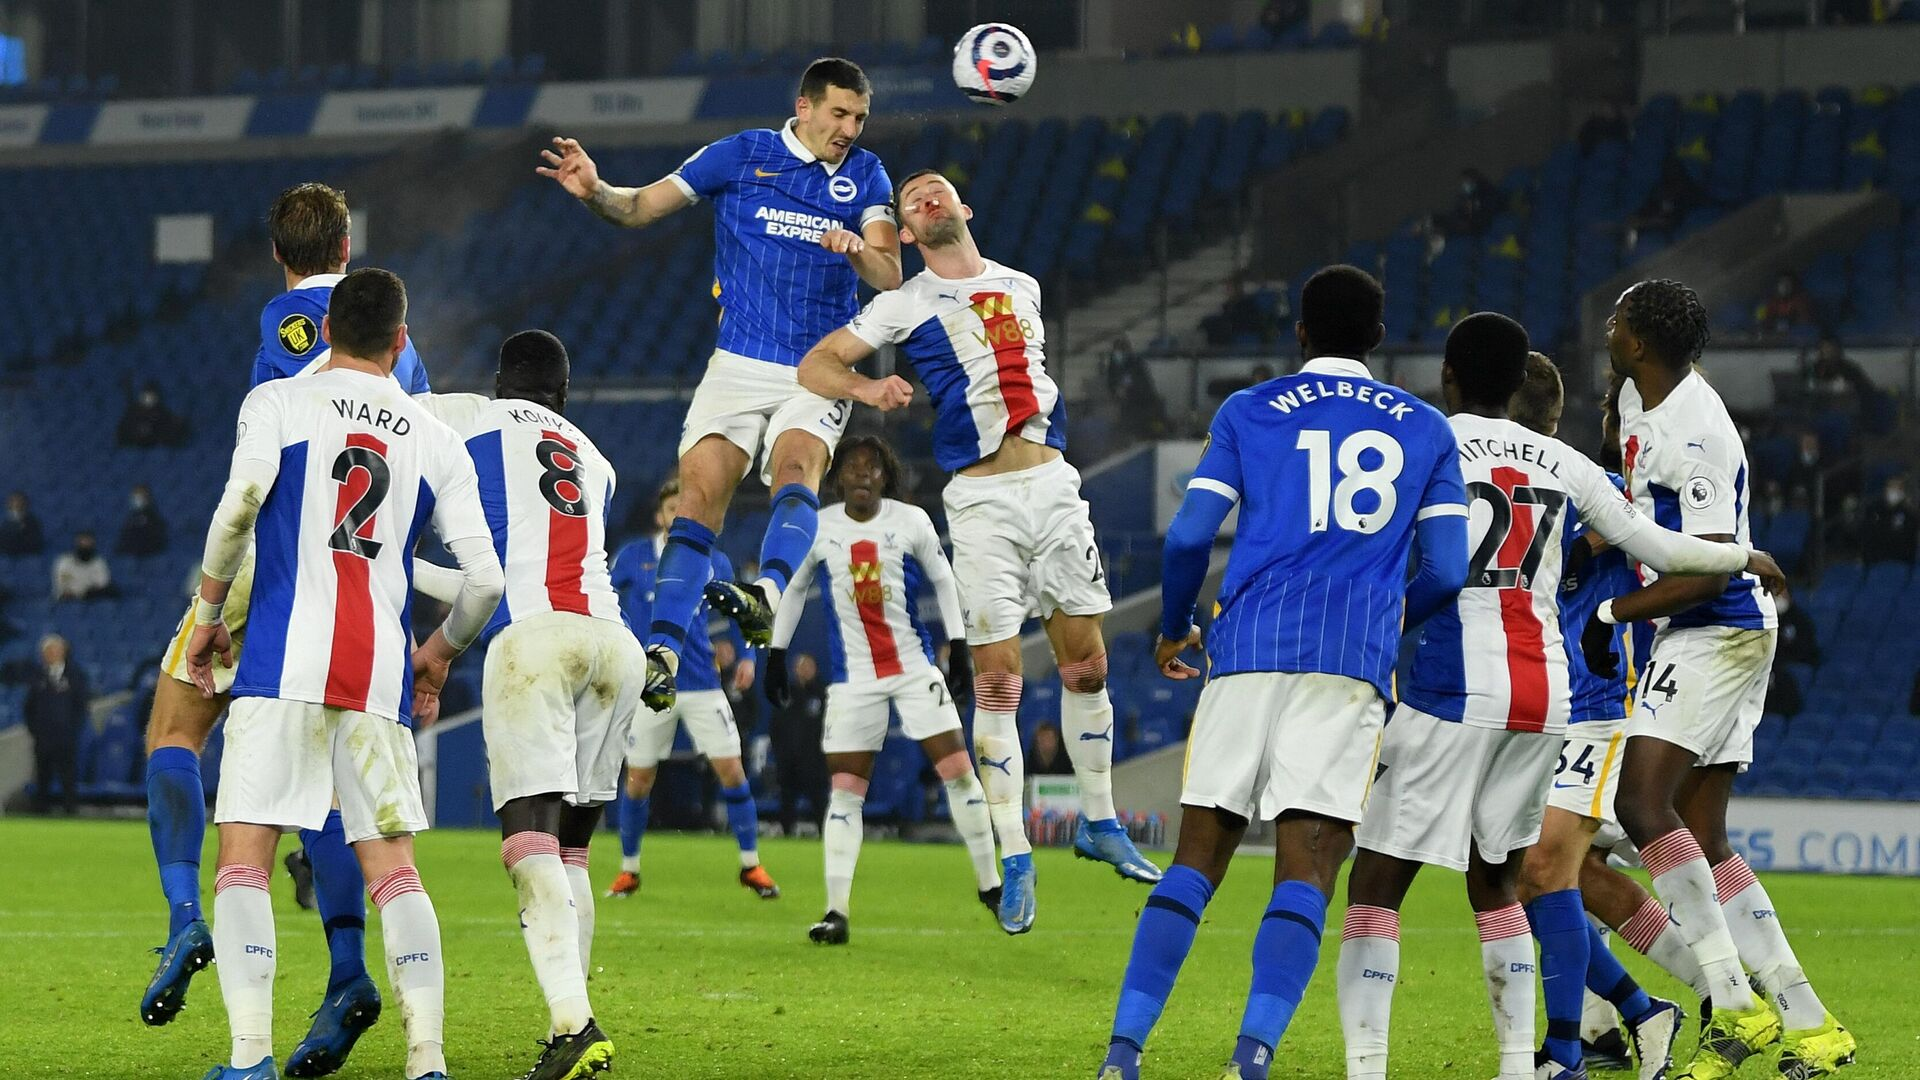 Brighton's English defender Lewis Dunk (centre L) vies with Crystal Palace's English defender Gary Cahill (C) during the English Premier League football match between Brighton and Hove Albion and Crystal Palace at the American Express Community Stadium in Brighton, southern England on February 22, 2021. (Photo by Mike Hewitt / POOL / AFP) / RESTRICTED TO EDITORIAL USE. No use with unauthorized audio, video, data, fixture lists, club/league logos or 'live' services. Online in-match use limited to 120 images. An additional 40 images may be used in extra time. No video emulation. Social media in-match use limited to 120 images. An additional 40 images may be used in extra time. No use in betting publications, games or single club/league/player publications. /  - РИА Новости, 1920, 23.02.2021